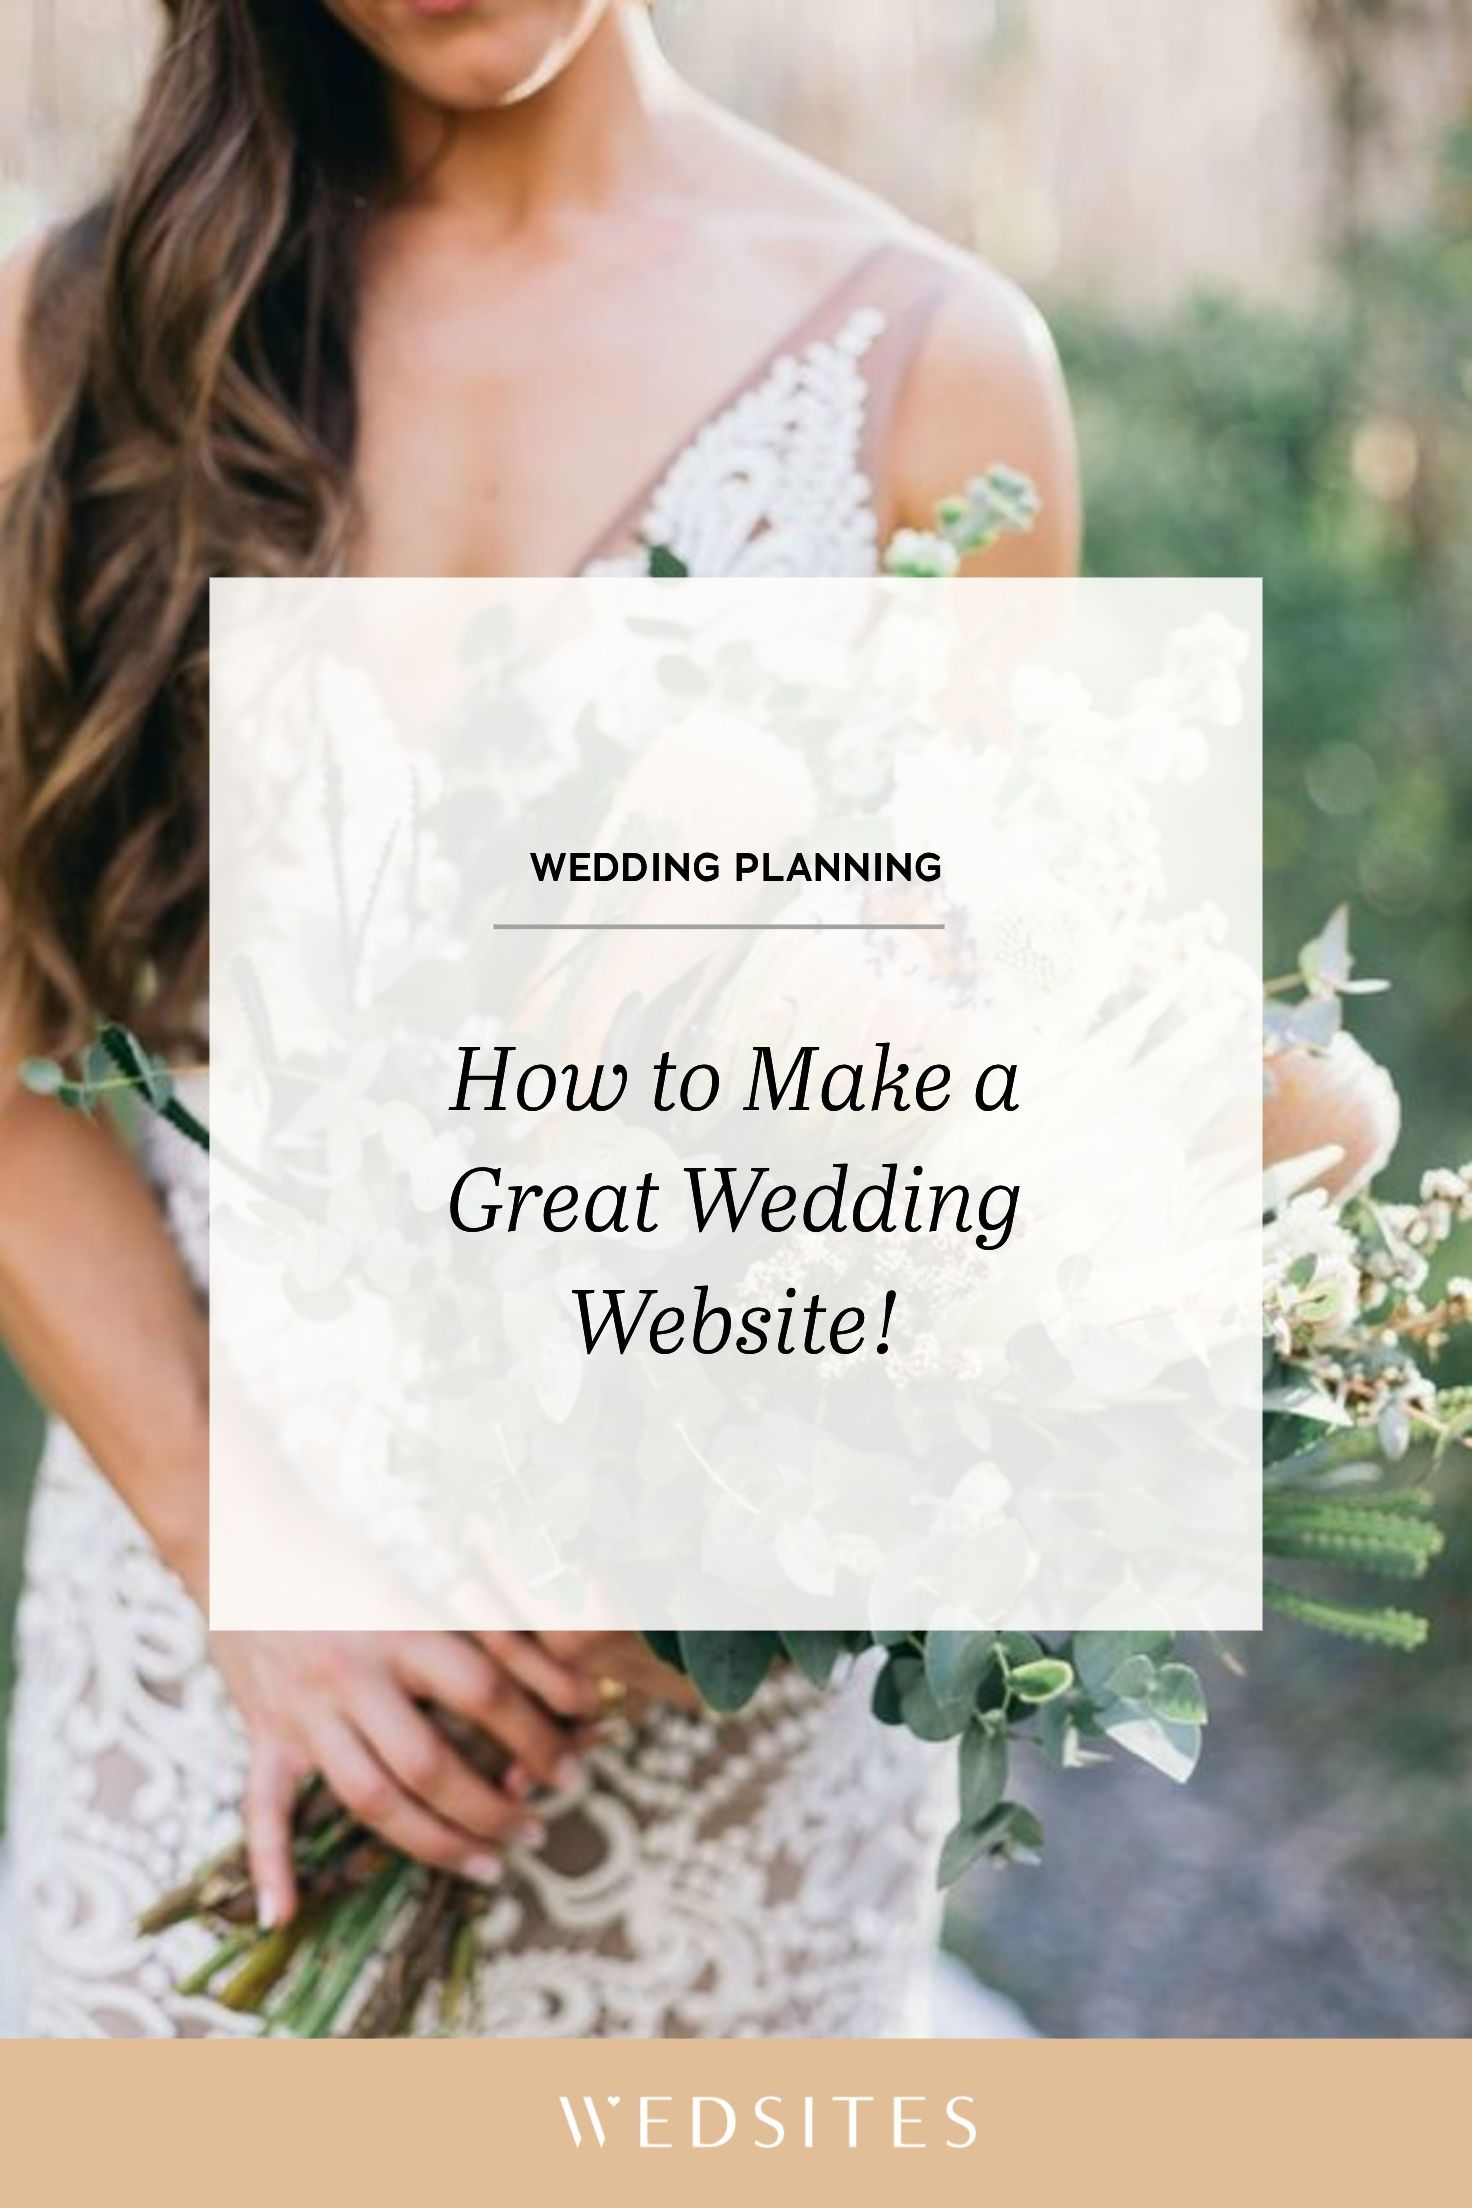 How To Make A Great Wedding Website That Your Guests Will Love In 2020 Wedding Website Wedding Website Rsvp Wedding Website Design